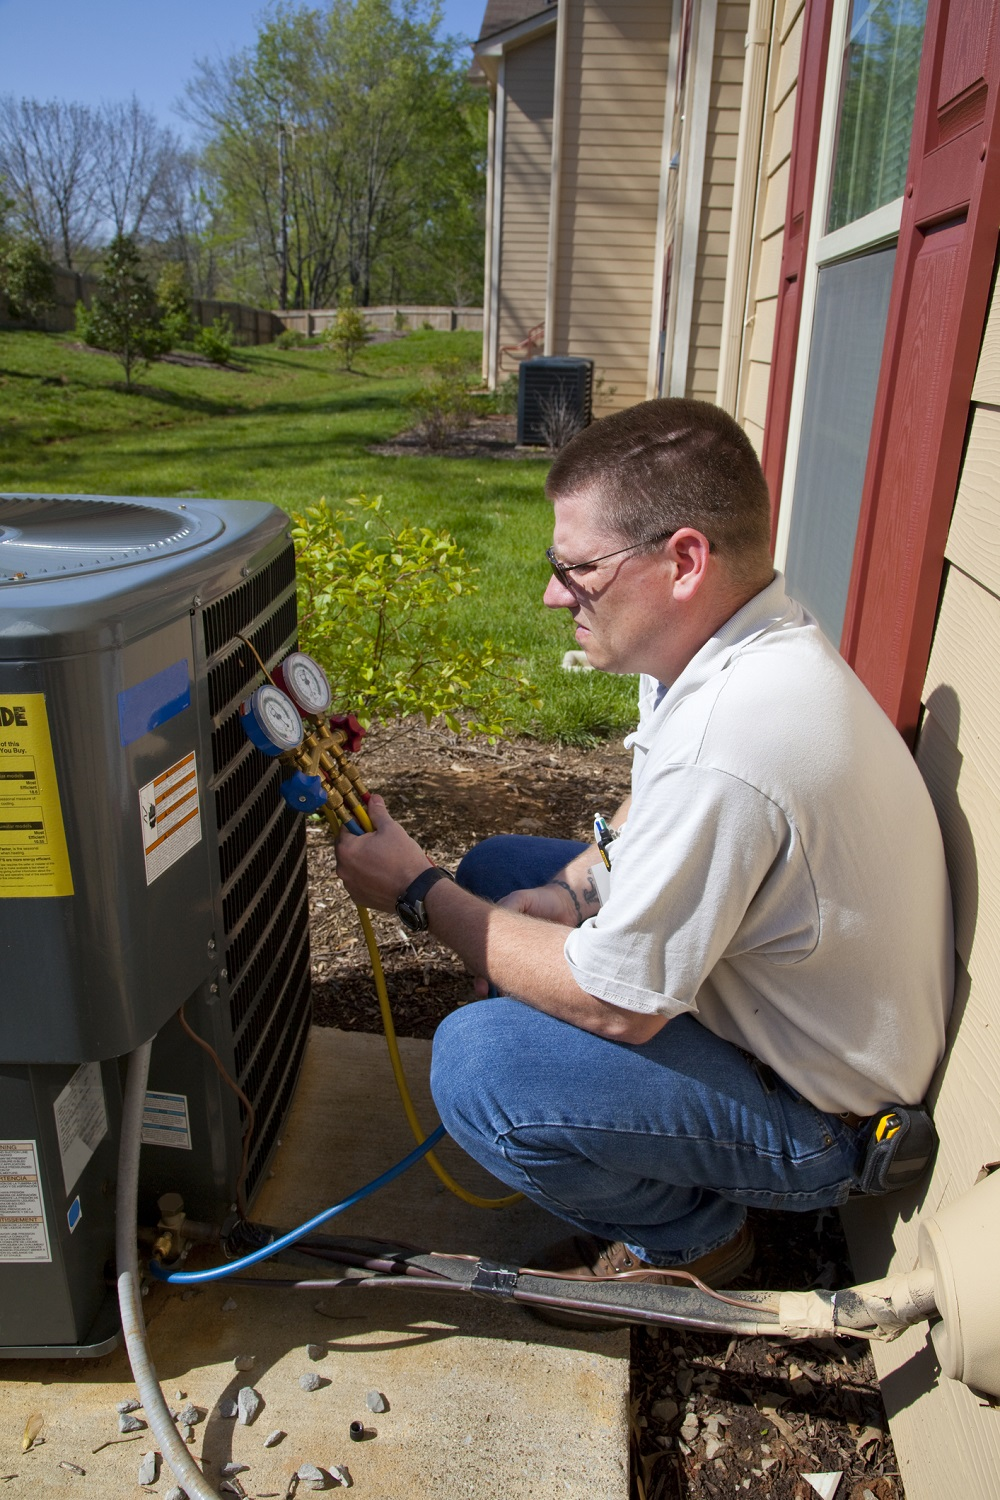 5 Ways an Air Conditioner Can Improve Your Home's Indoor Air Quality